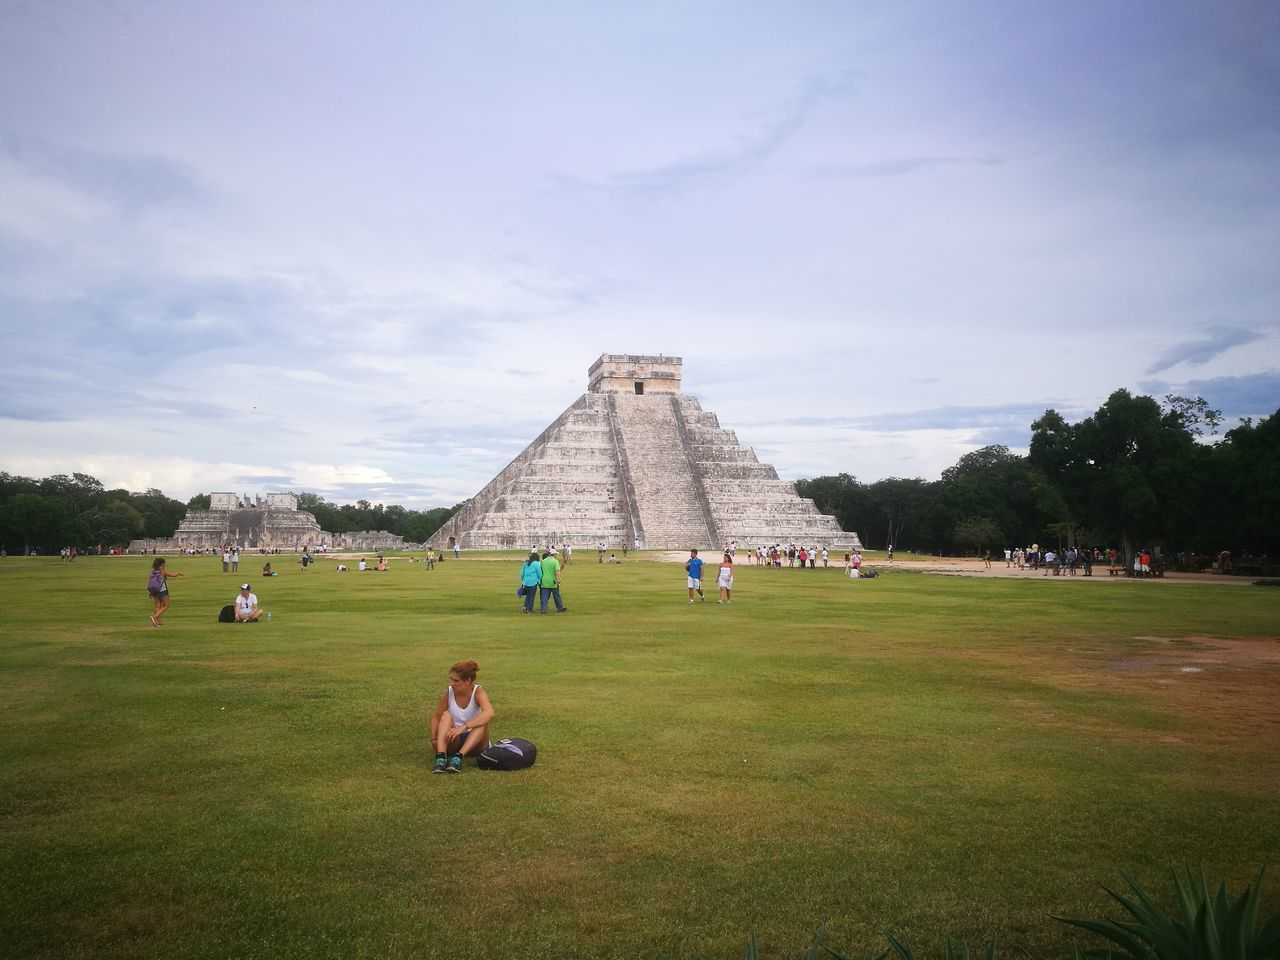 Mexico Chichen-Itzá Mayanculture TopPhoto Sacred Places